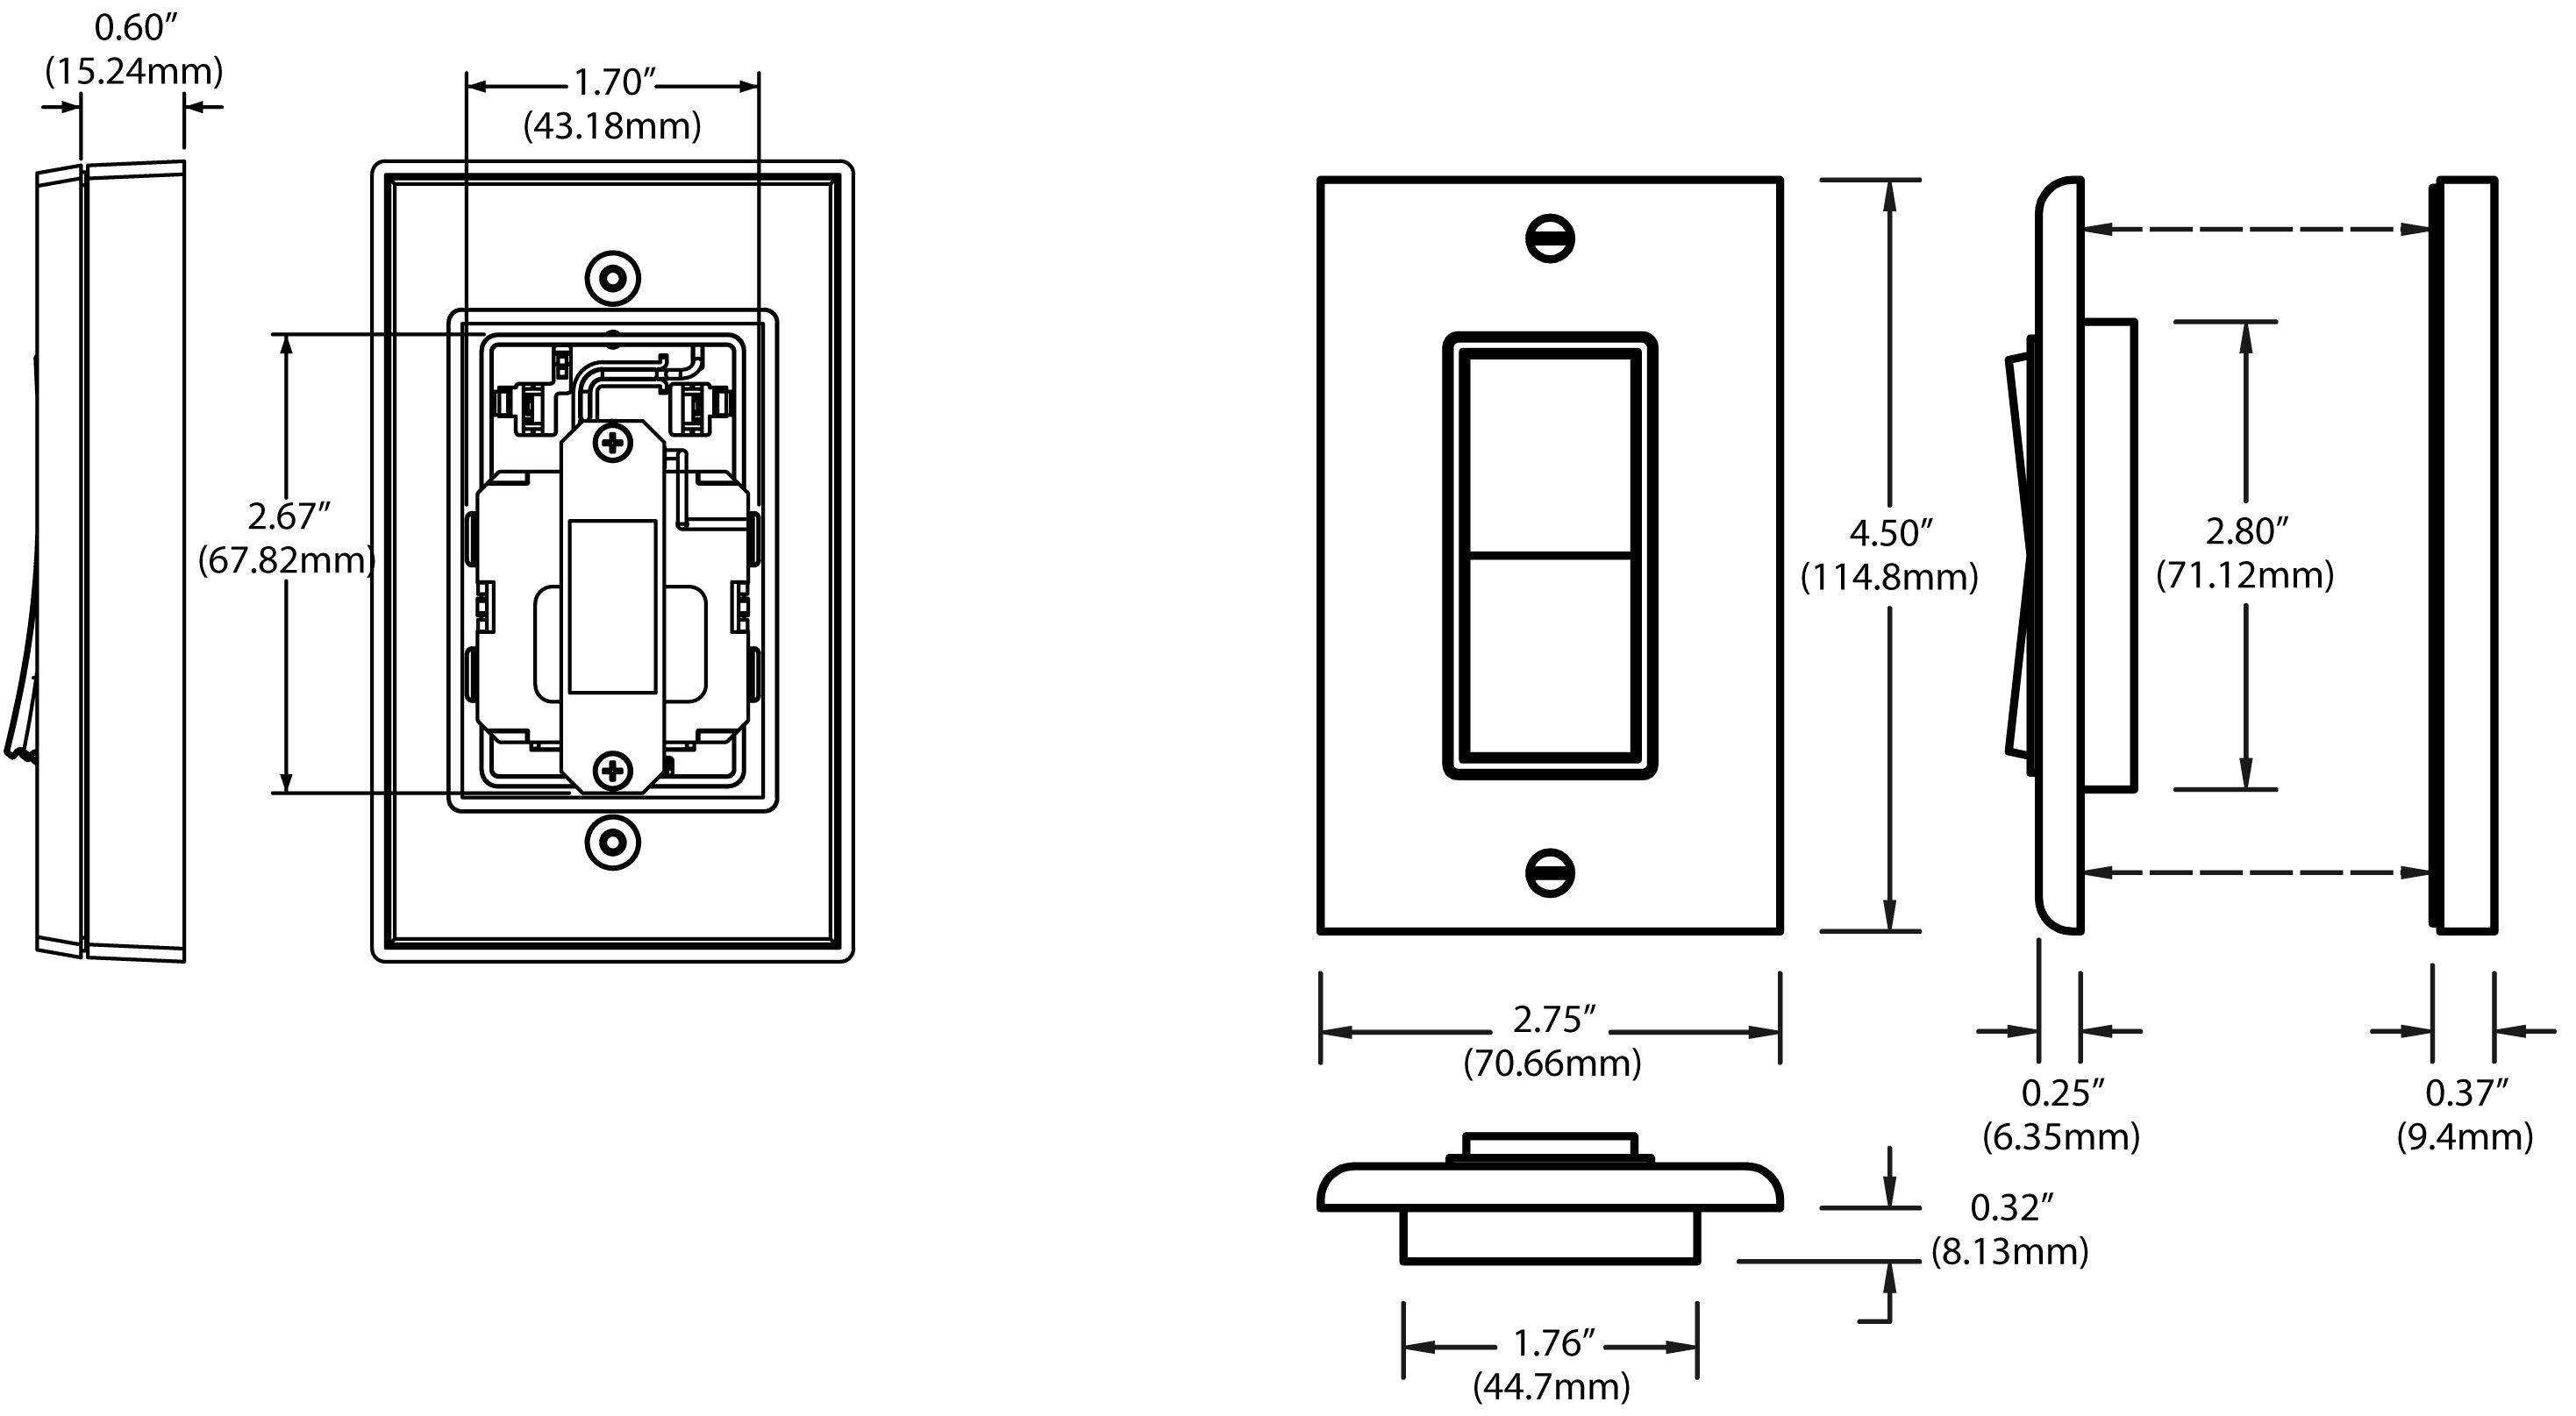 small resolution of beautiful leviton light switch wiring diagram diagrams digramssample diagramimages wiringdiagramsample wiringdiagram